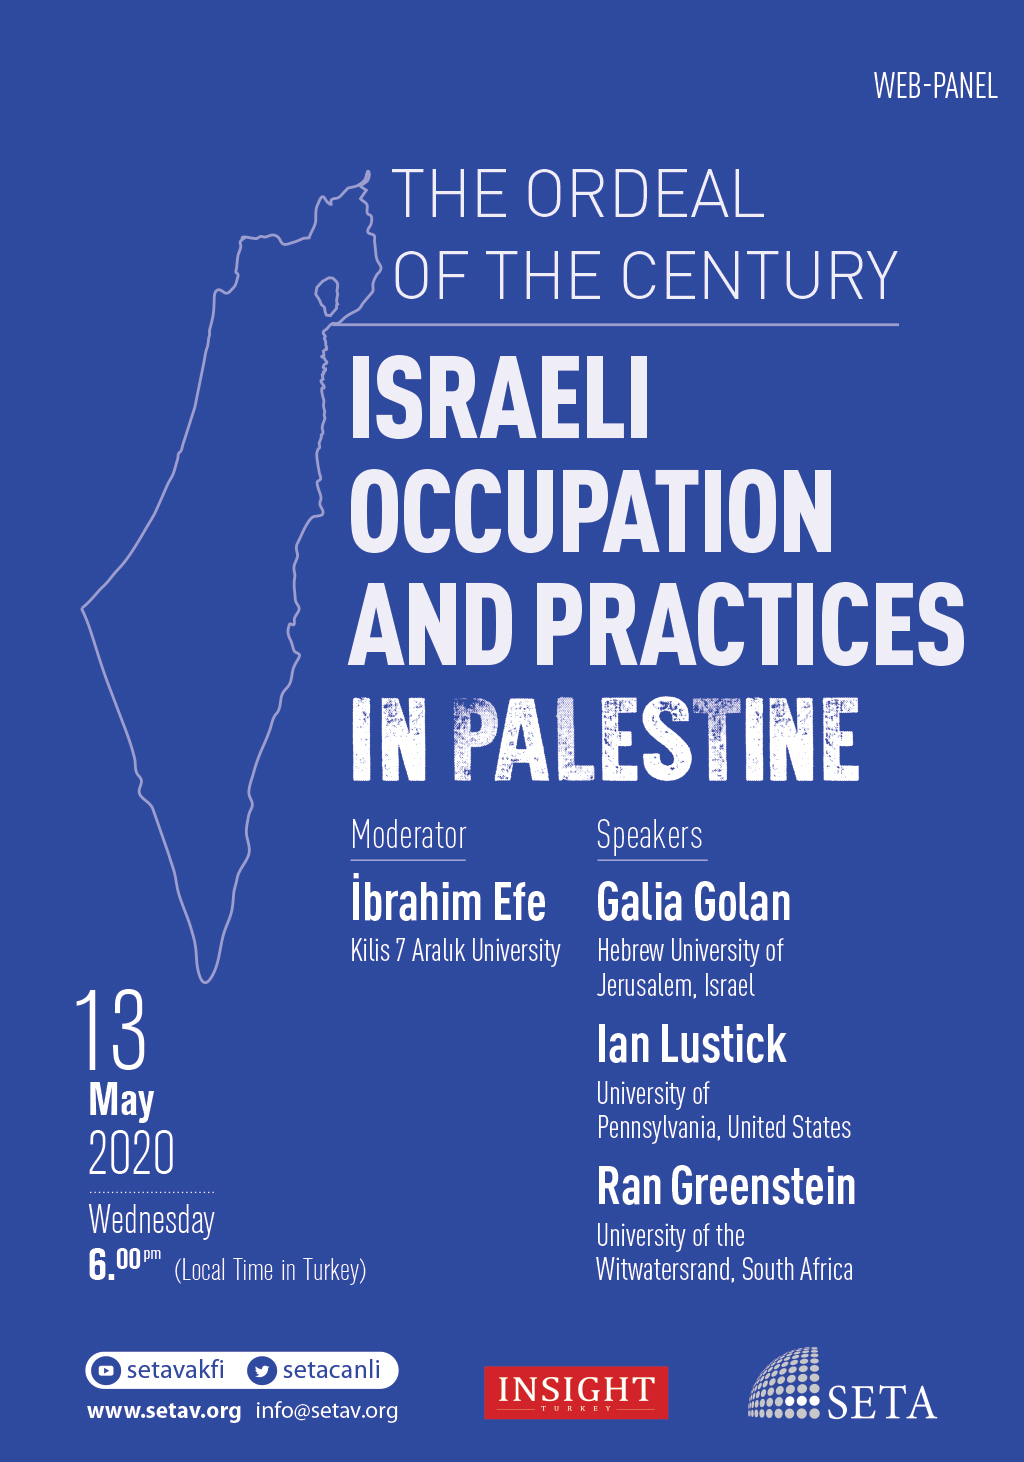 Web Panel: The Ordeal of the Century | Israeli Occupation and Practices in Palestine